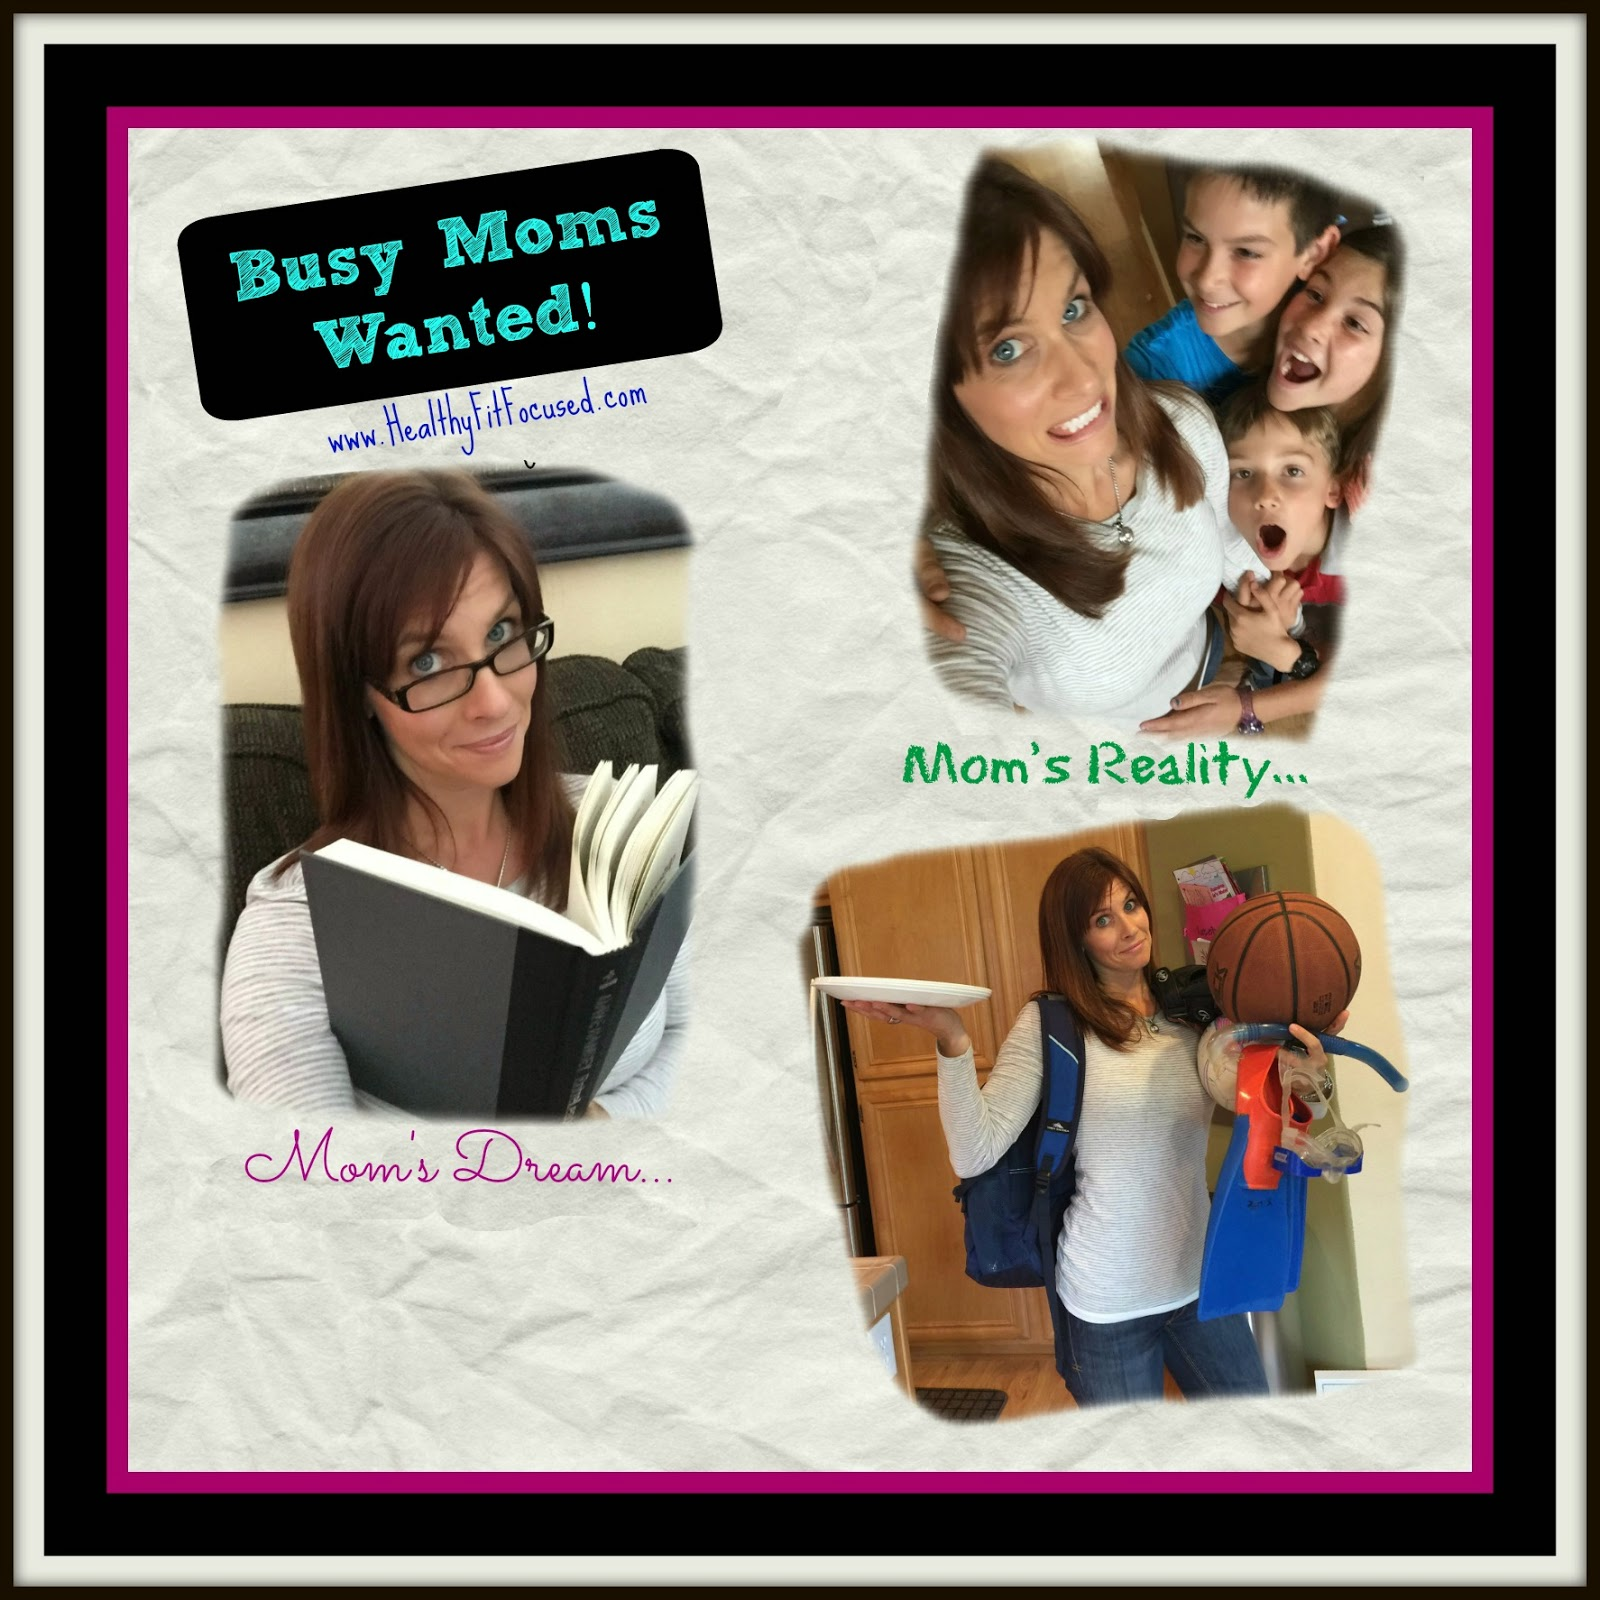 How to Build a Business as a Busy Mom, New Coach Training, Build a Business From Home, www.HealthyFitFocused.com